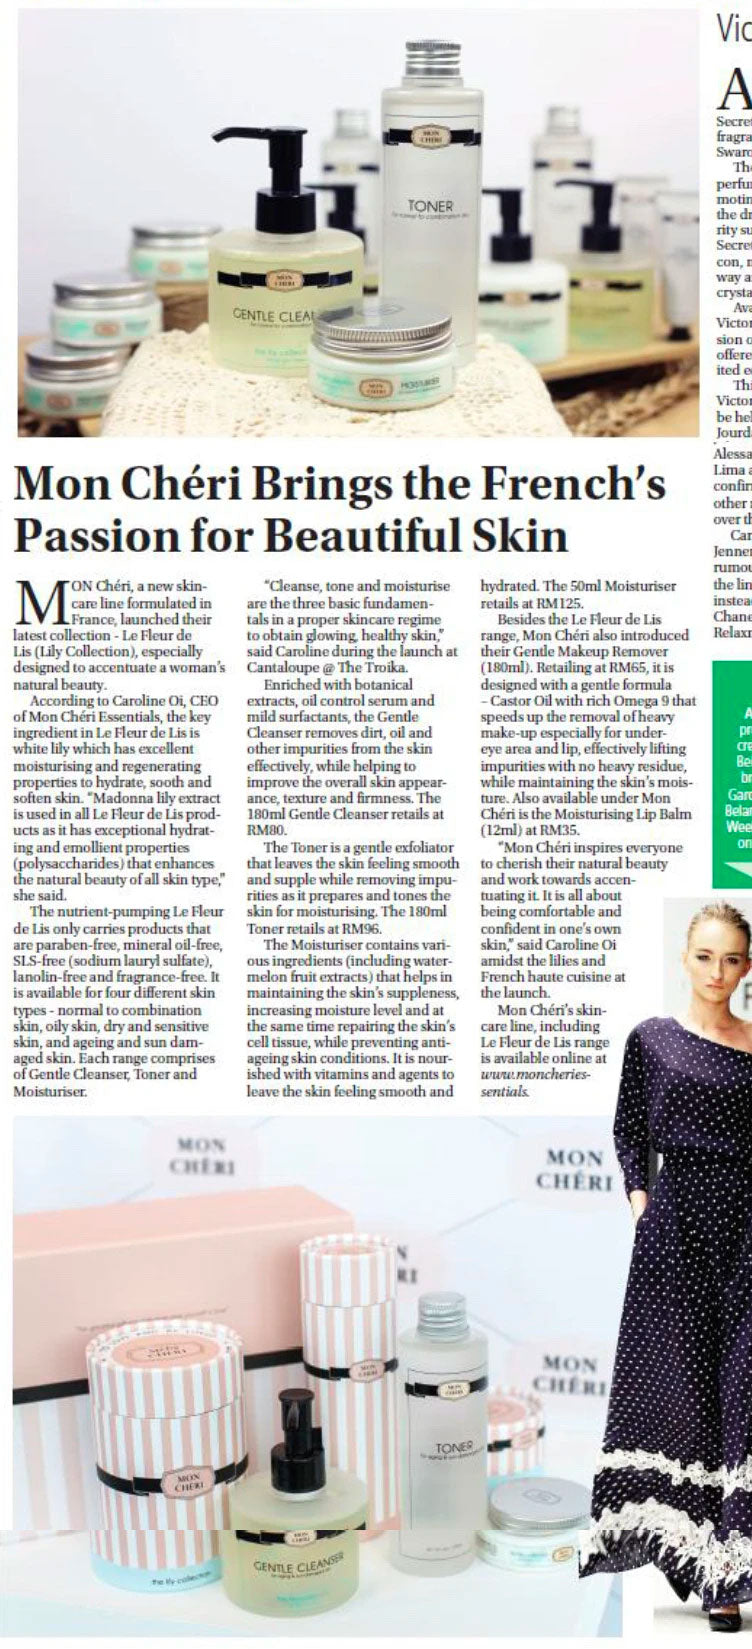 Mon Chéri Brings the French's Passion for Beautiful Skin (New Sarawak Tribune, Style) - 19 November 2014